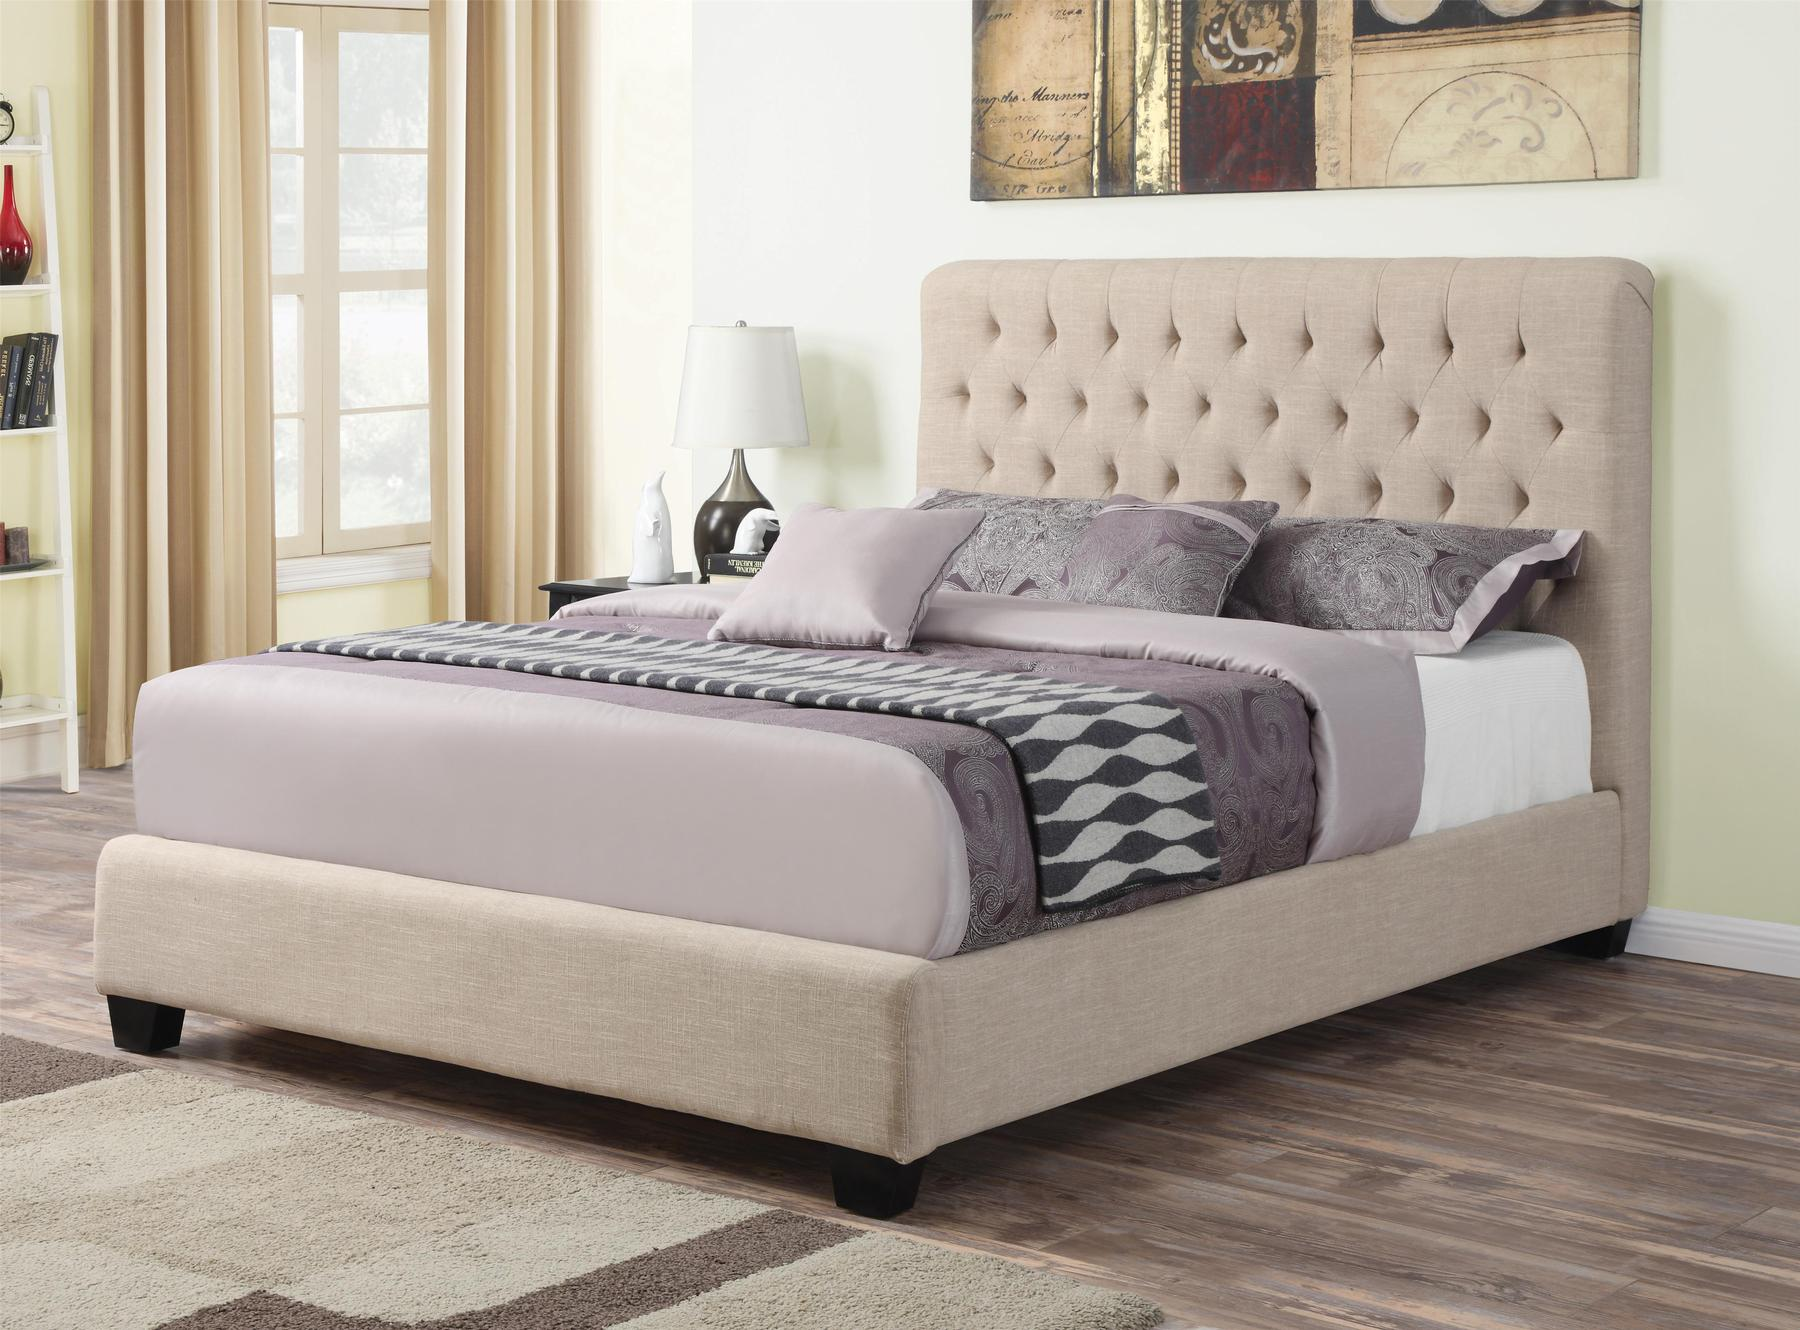 Picture of: Chloe Queen Size Bed 300007q Coaster Furniture Modern Beds Comfyco Furniture